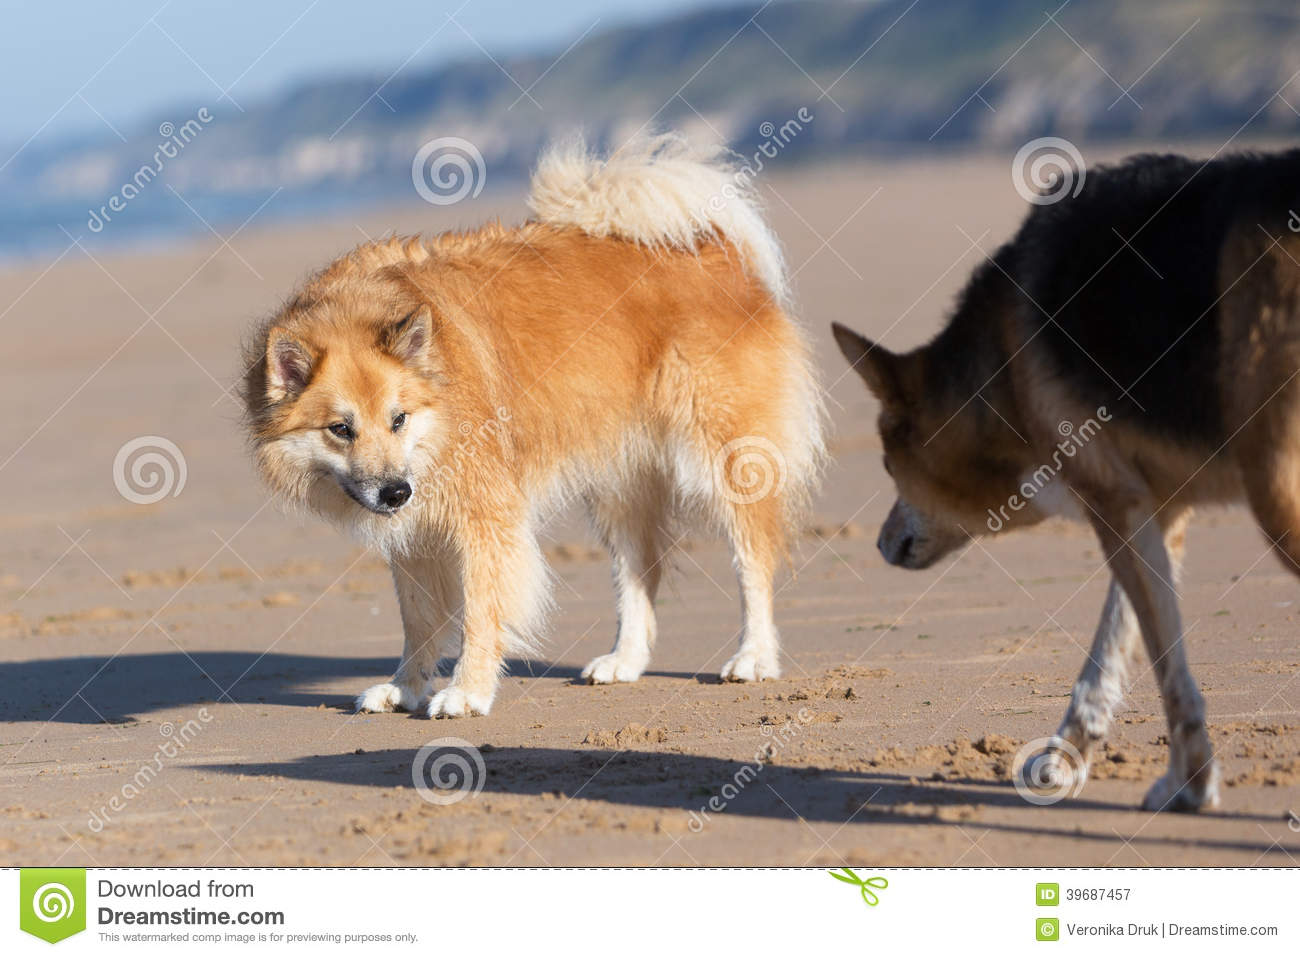 Dogs With Submissive And Dominate Behavior Stock Photo.